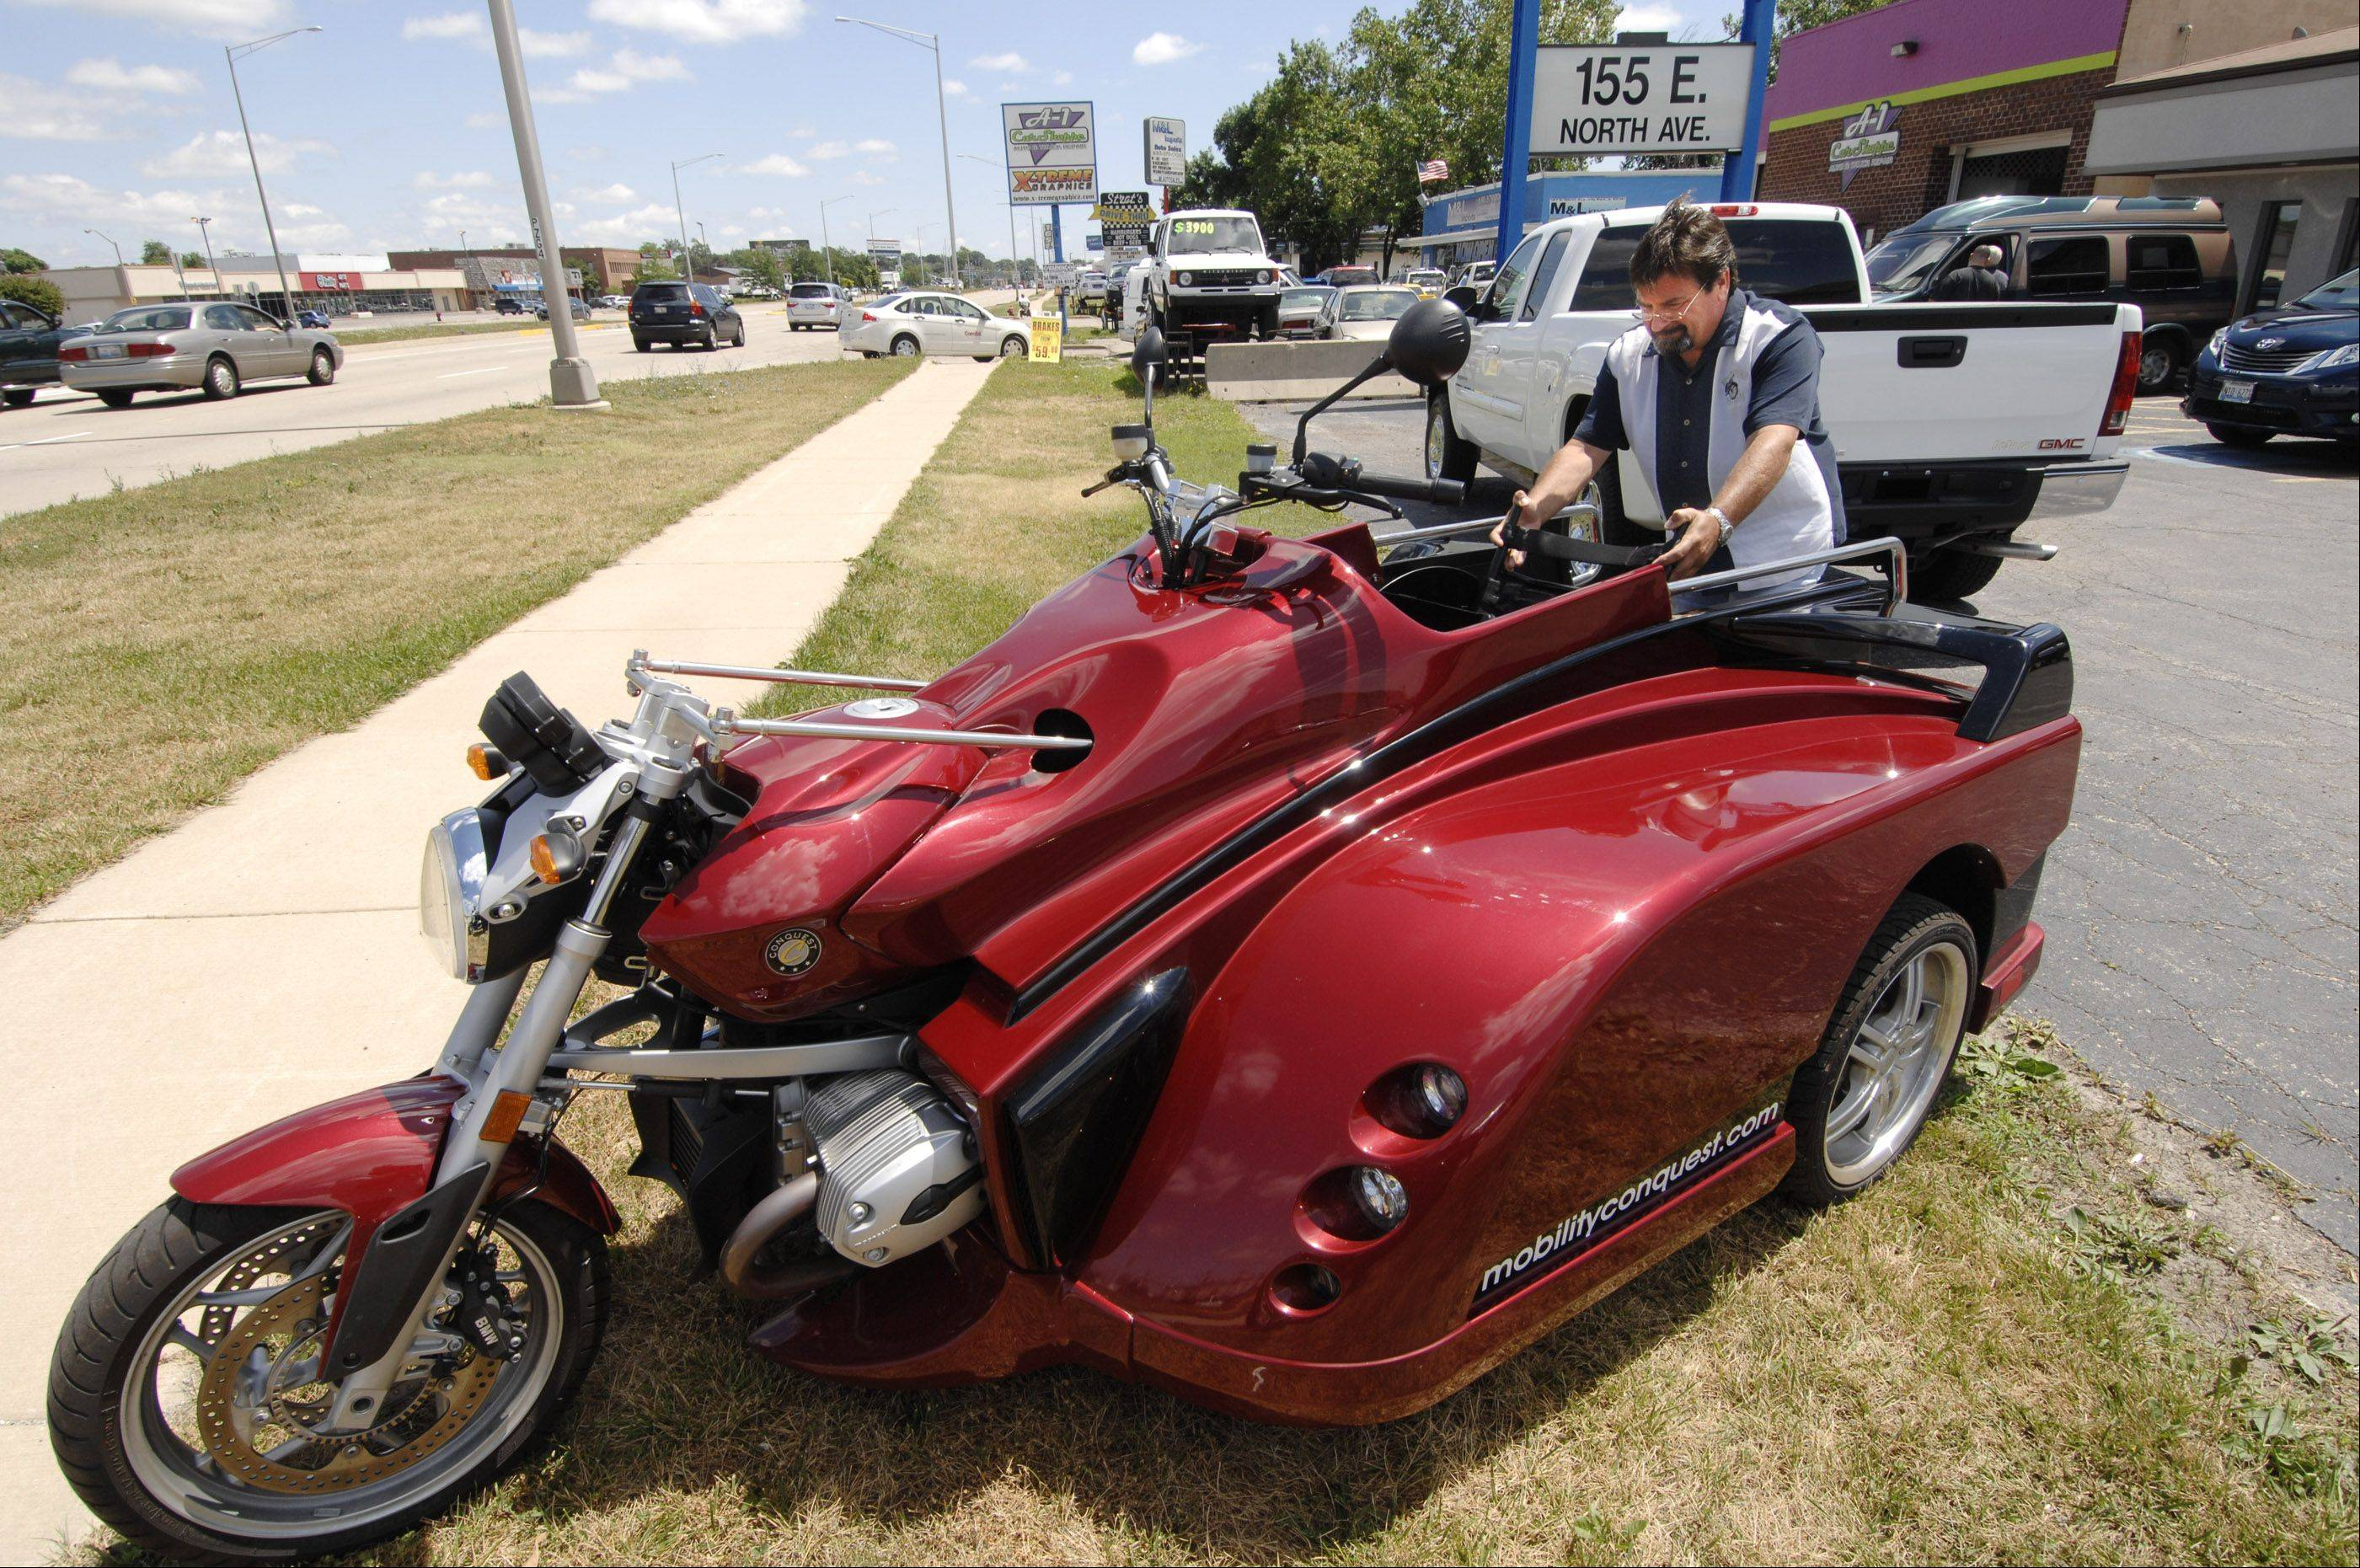 Visitors to Thursday's Mobility Expo and Conference in Villa Park will be able to collect information on a variety of resources to improve accessibility and even check out a motorcycle designed for people in wheelchairs.